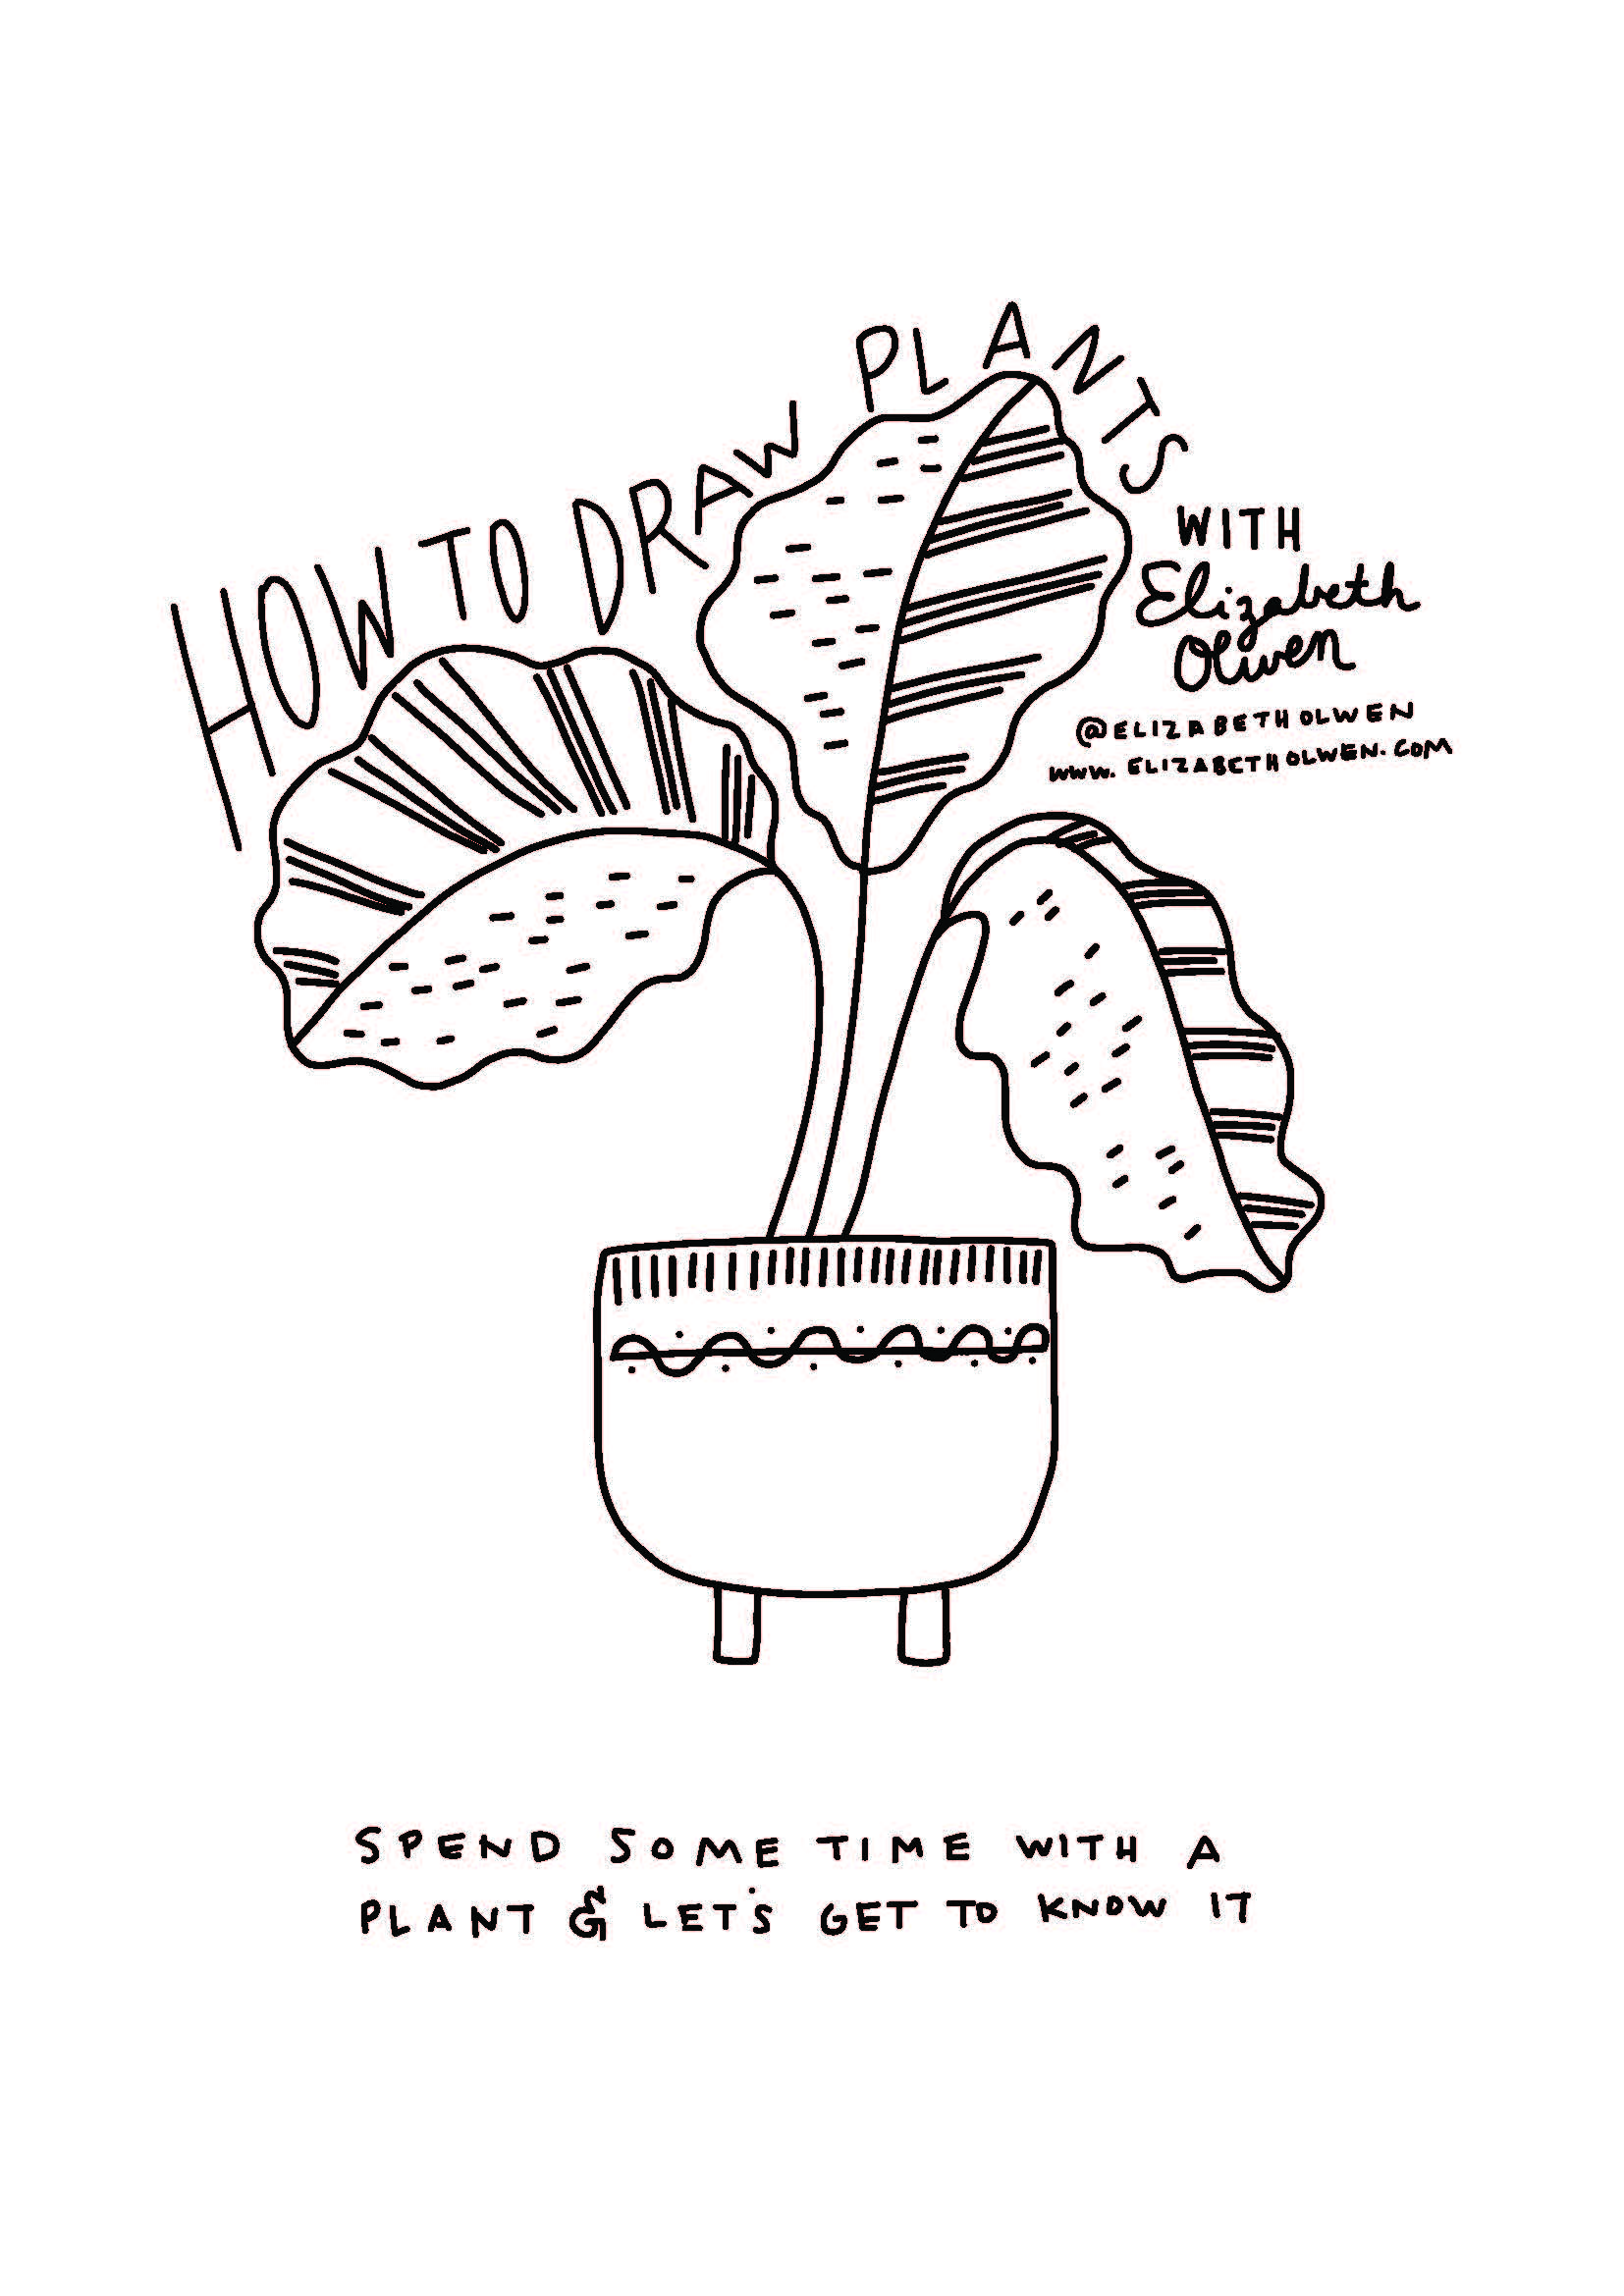 Howtodrawplants_cover_Page_1.jpg